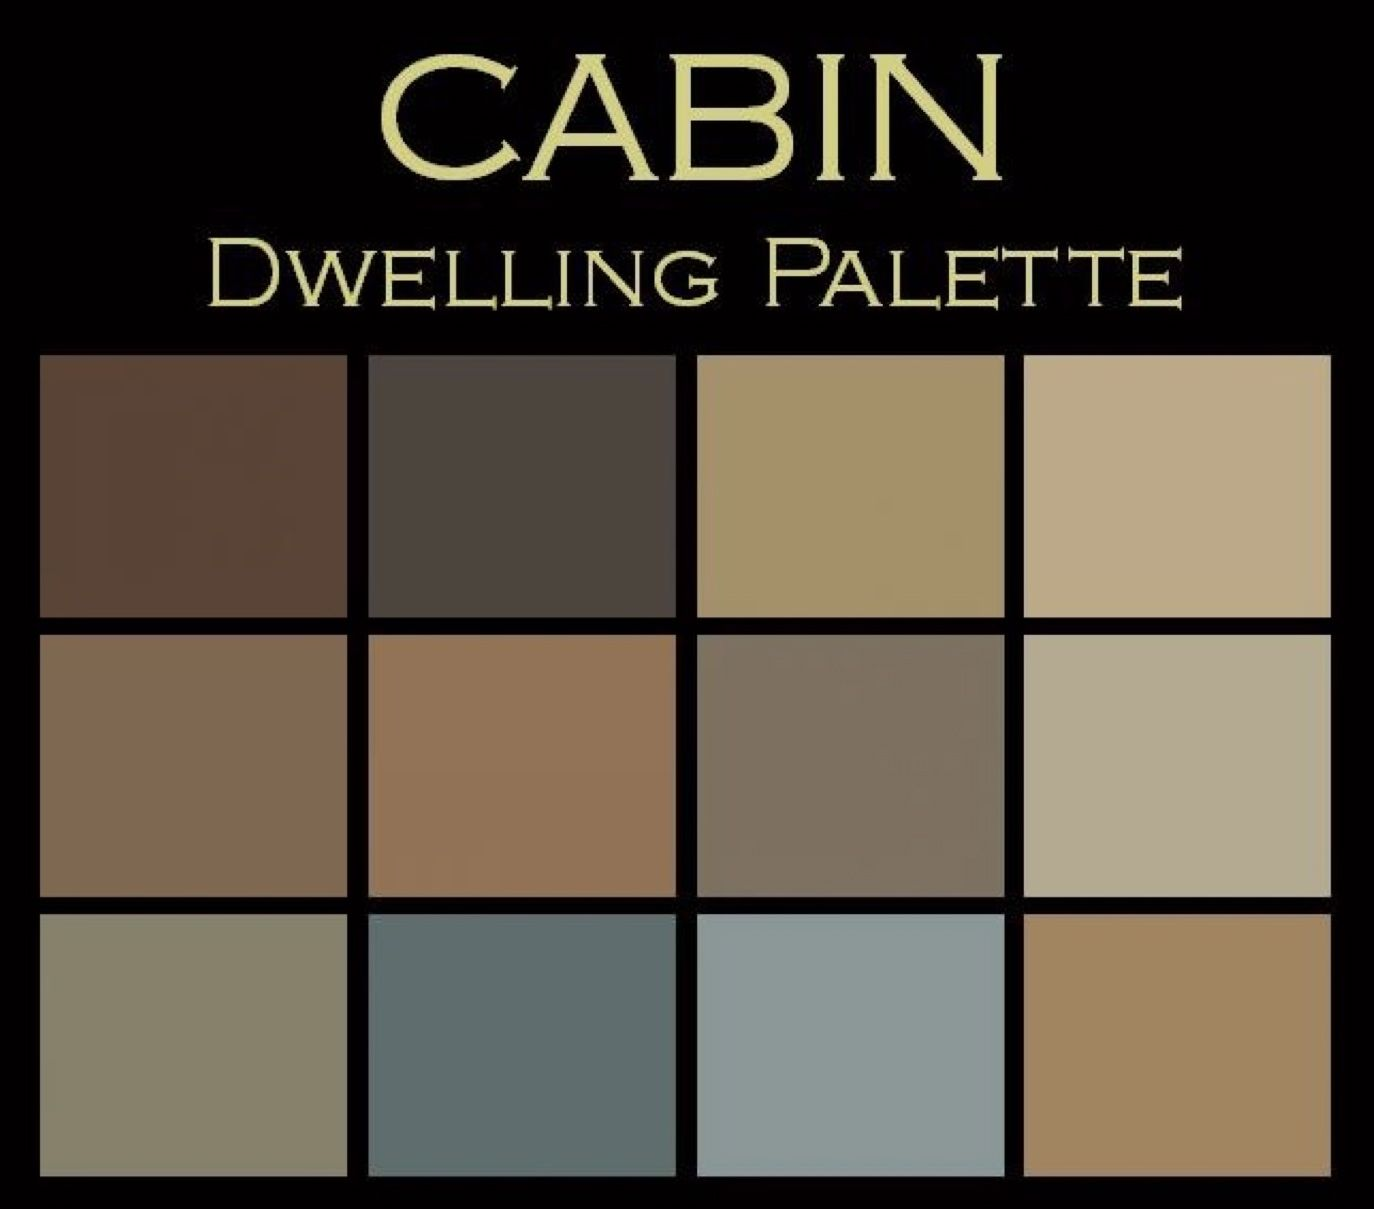 Photo of Cabin Dwelling Palette